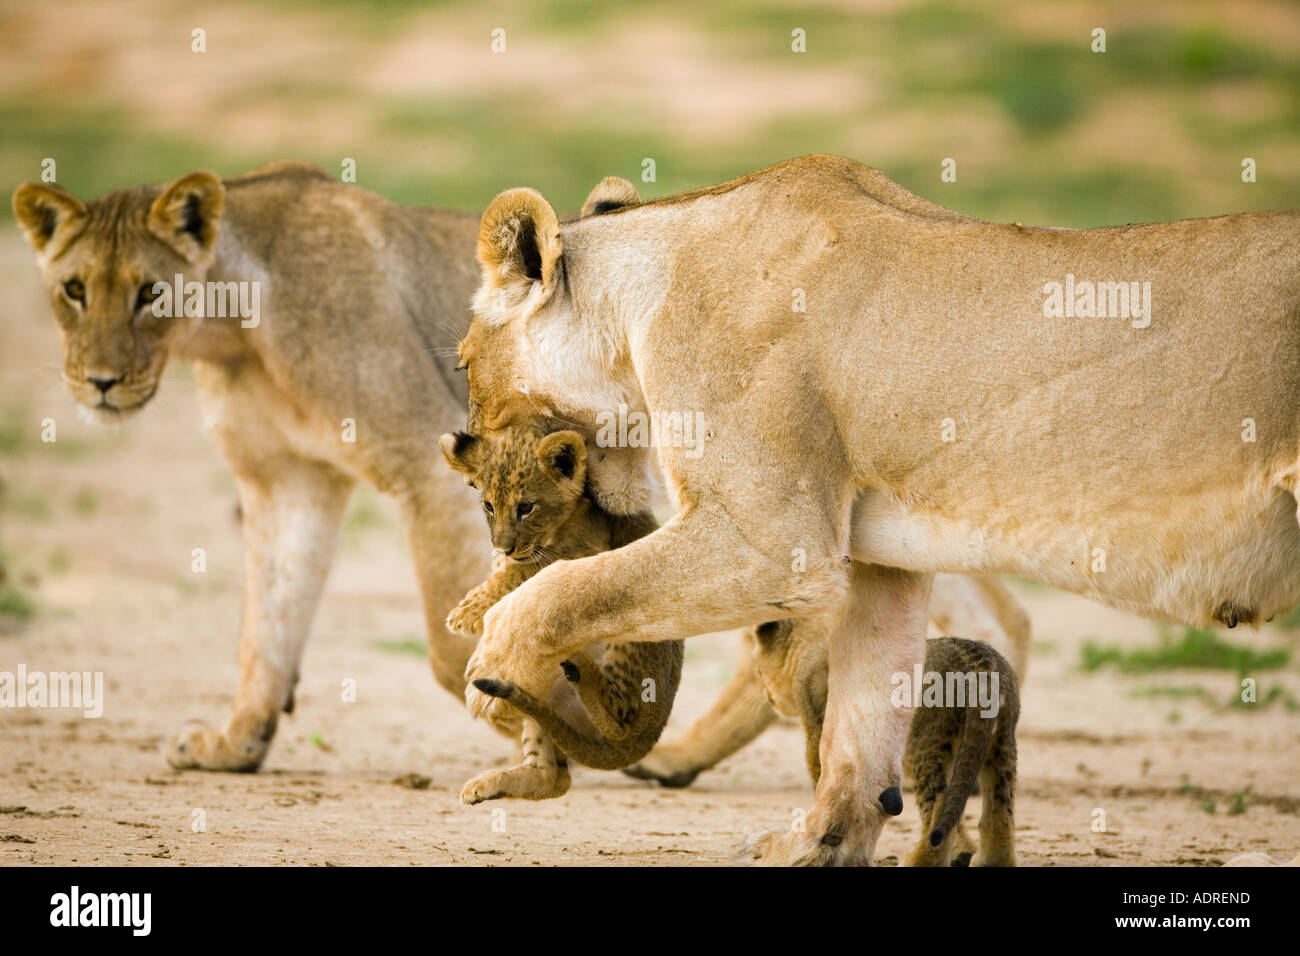 Lionne avec young cub Photo Stock